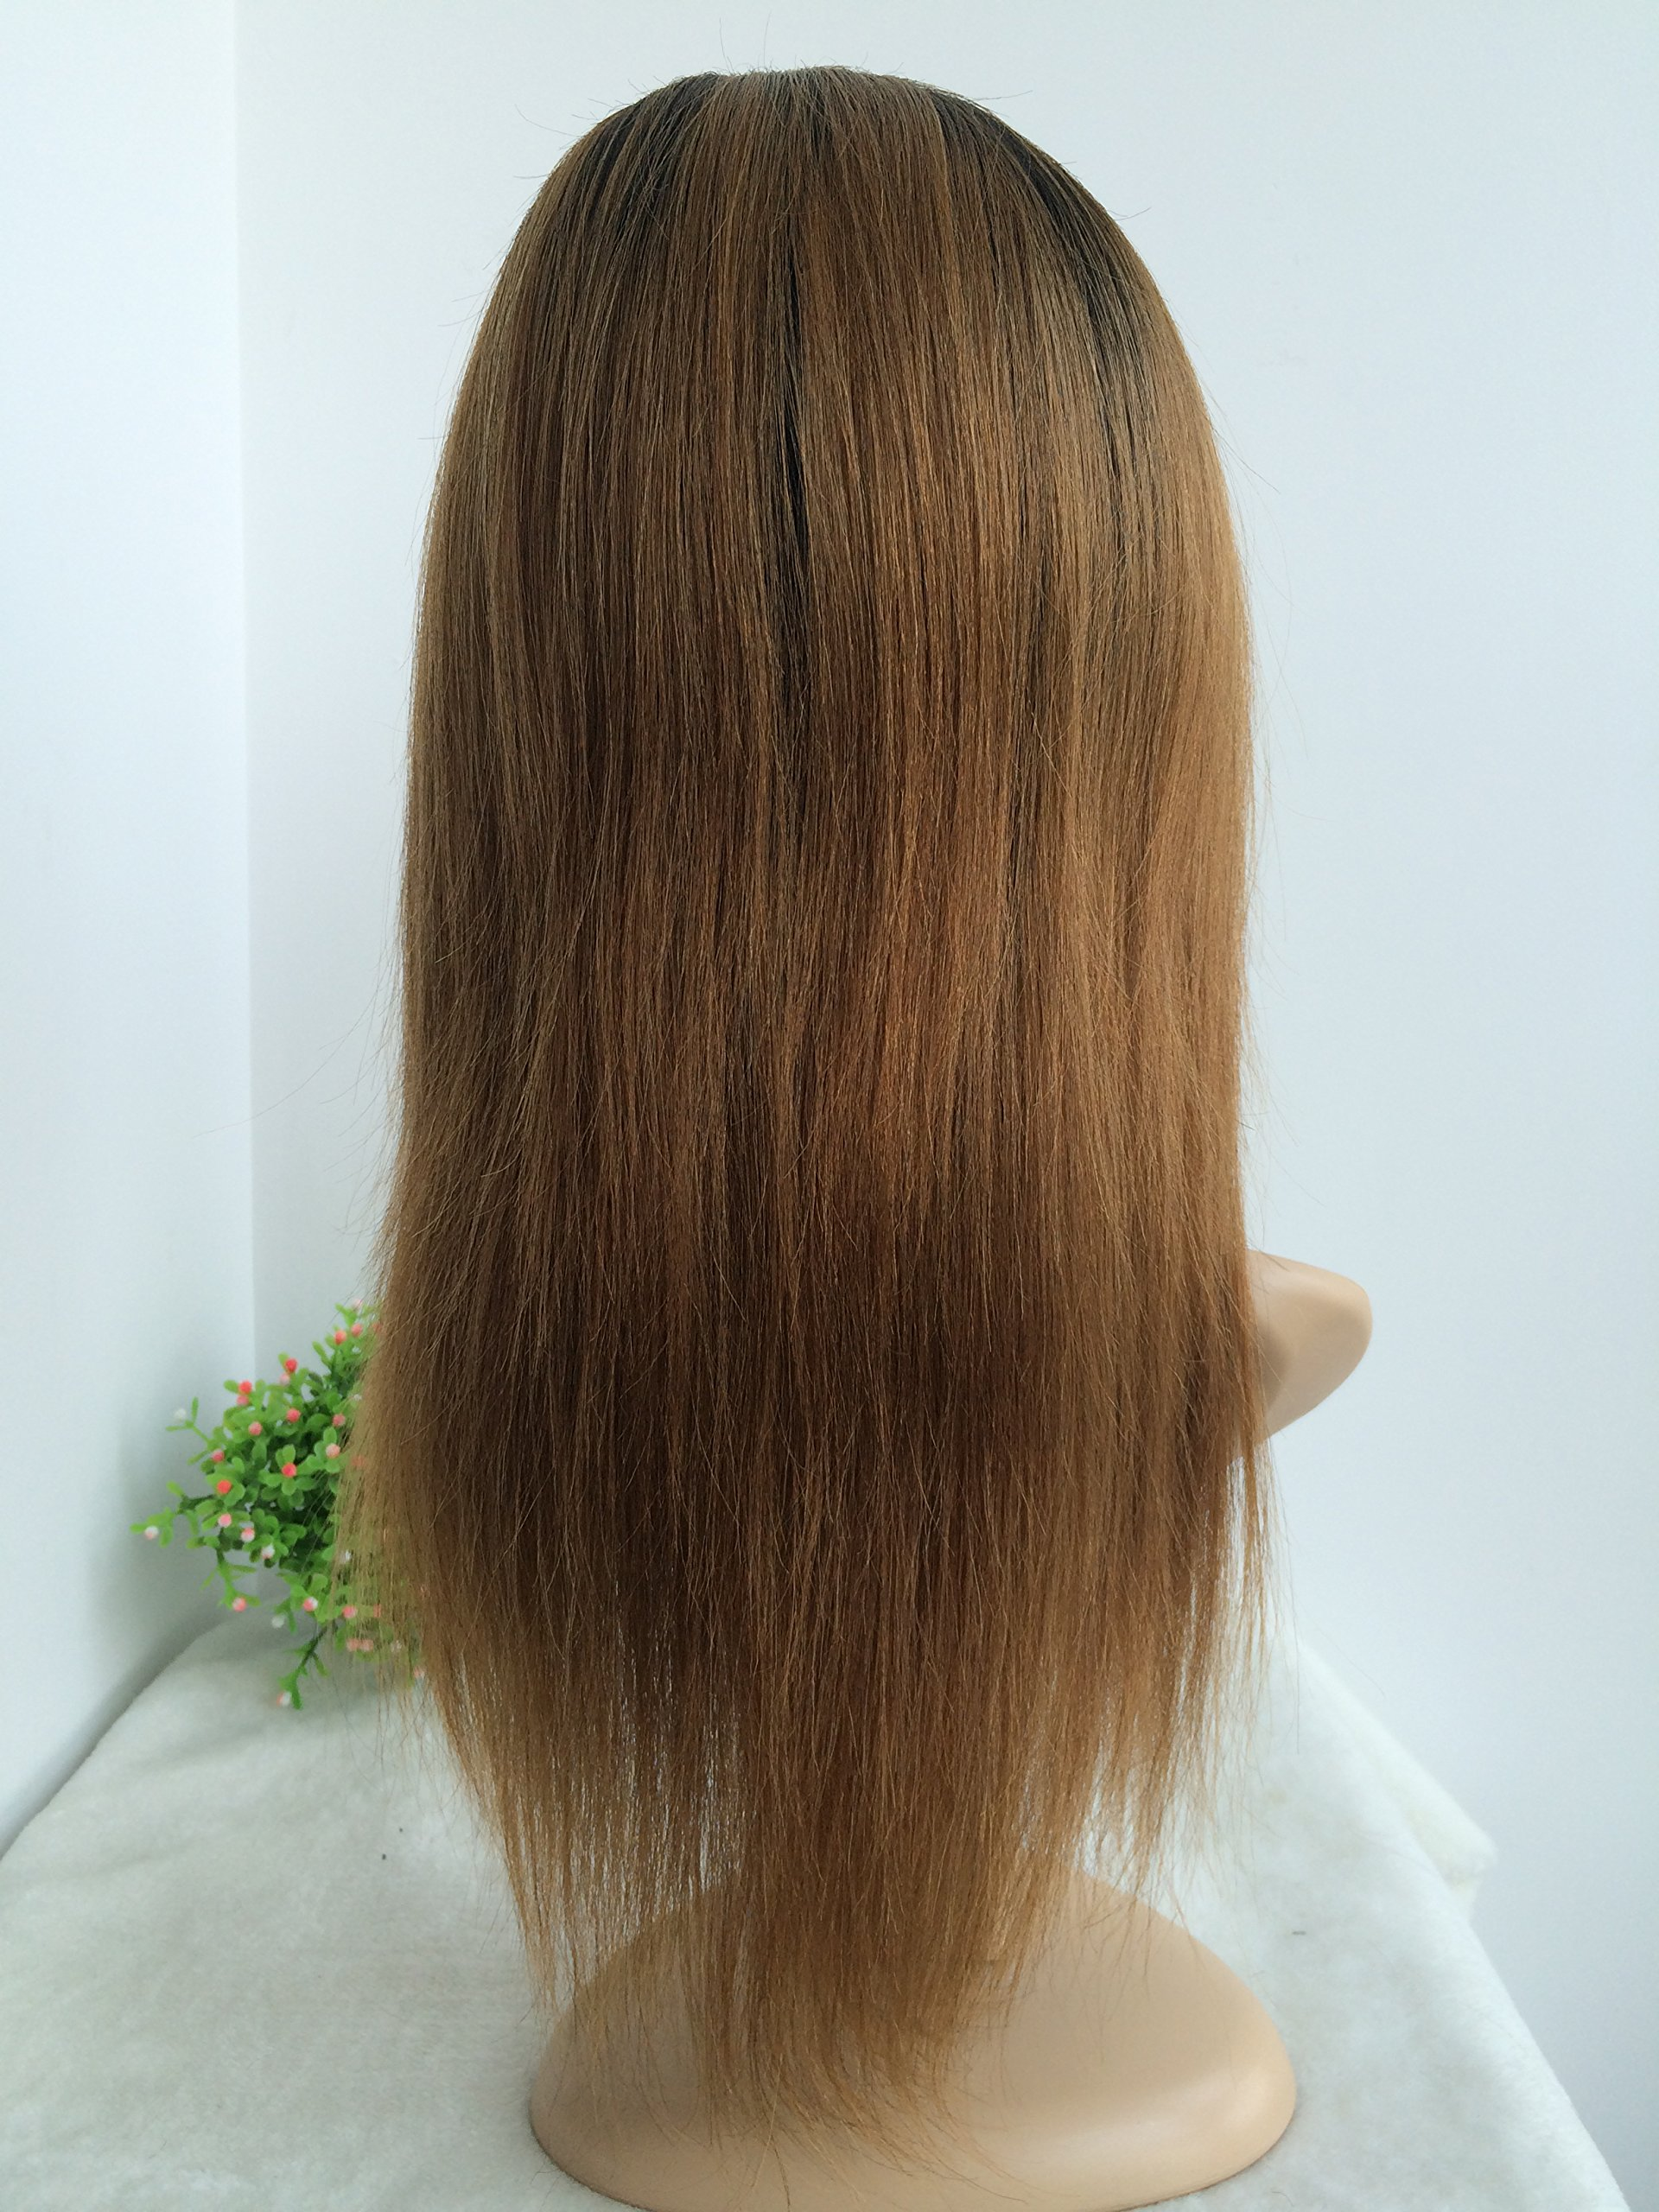 CHINESE VIRGIN HAIR,14 INCH,LIGHT YAKI FULL LACE WIGS SILK TOP BLEACHED KNOTS